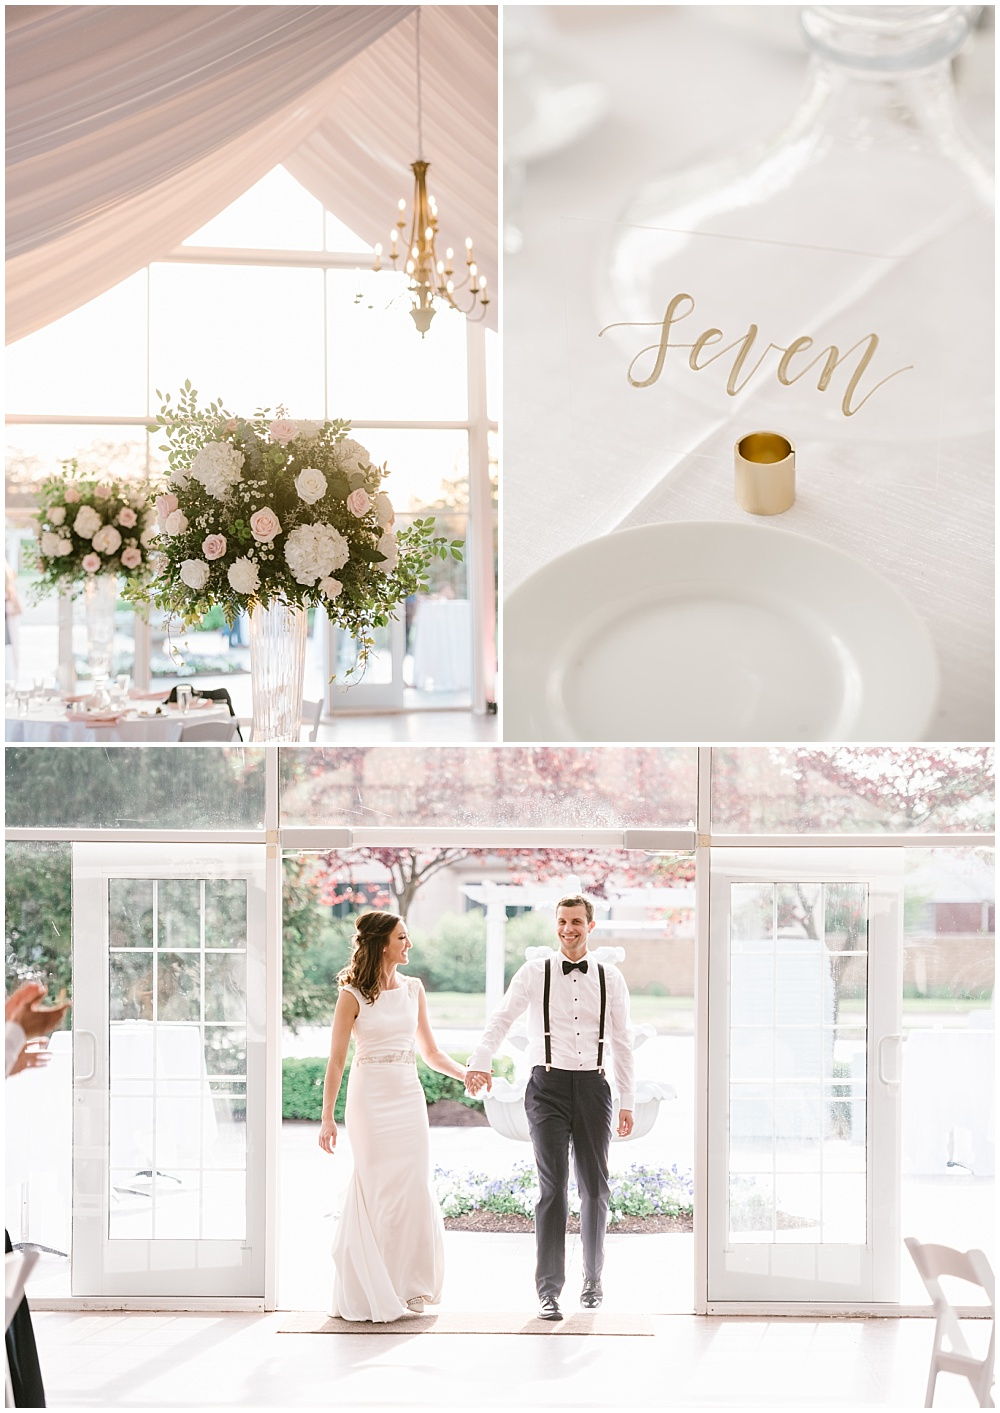 Blush and gold wedding tablescape with large clear glass vessels. Bride and groom grand entrance. | Spring blush garden-inspired memorial day weekend wedding at the beautiful Ritz Charles Garden Pavilion with Stacy Able Photography and Jessica Dum Wedding Coordination